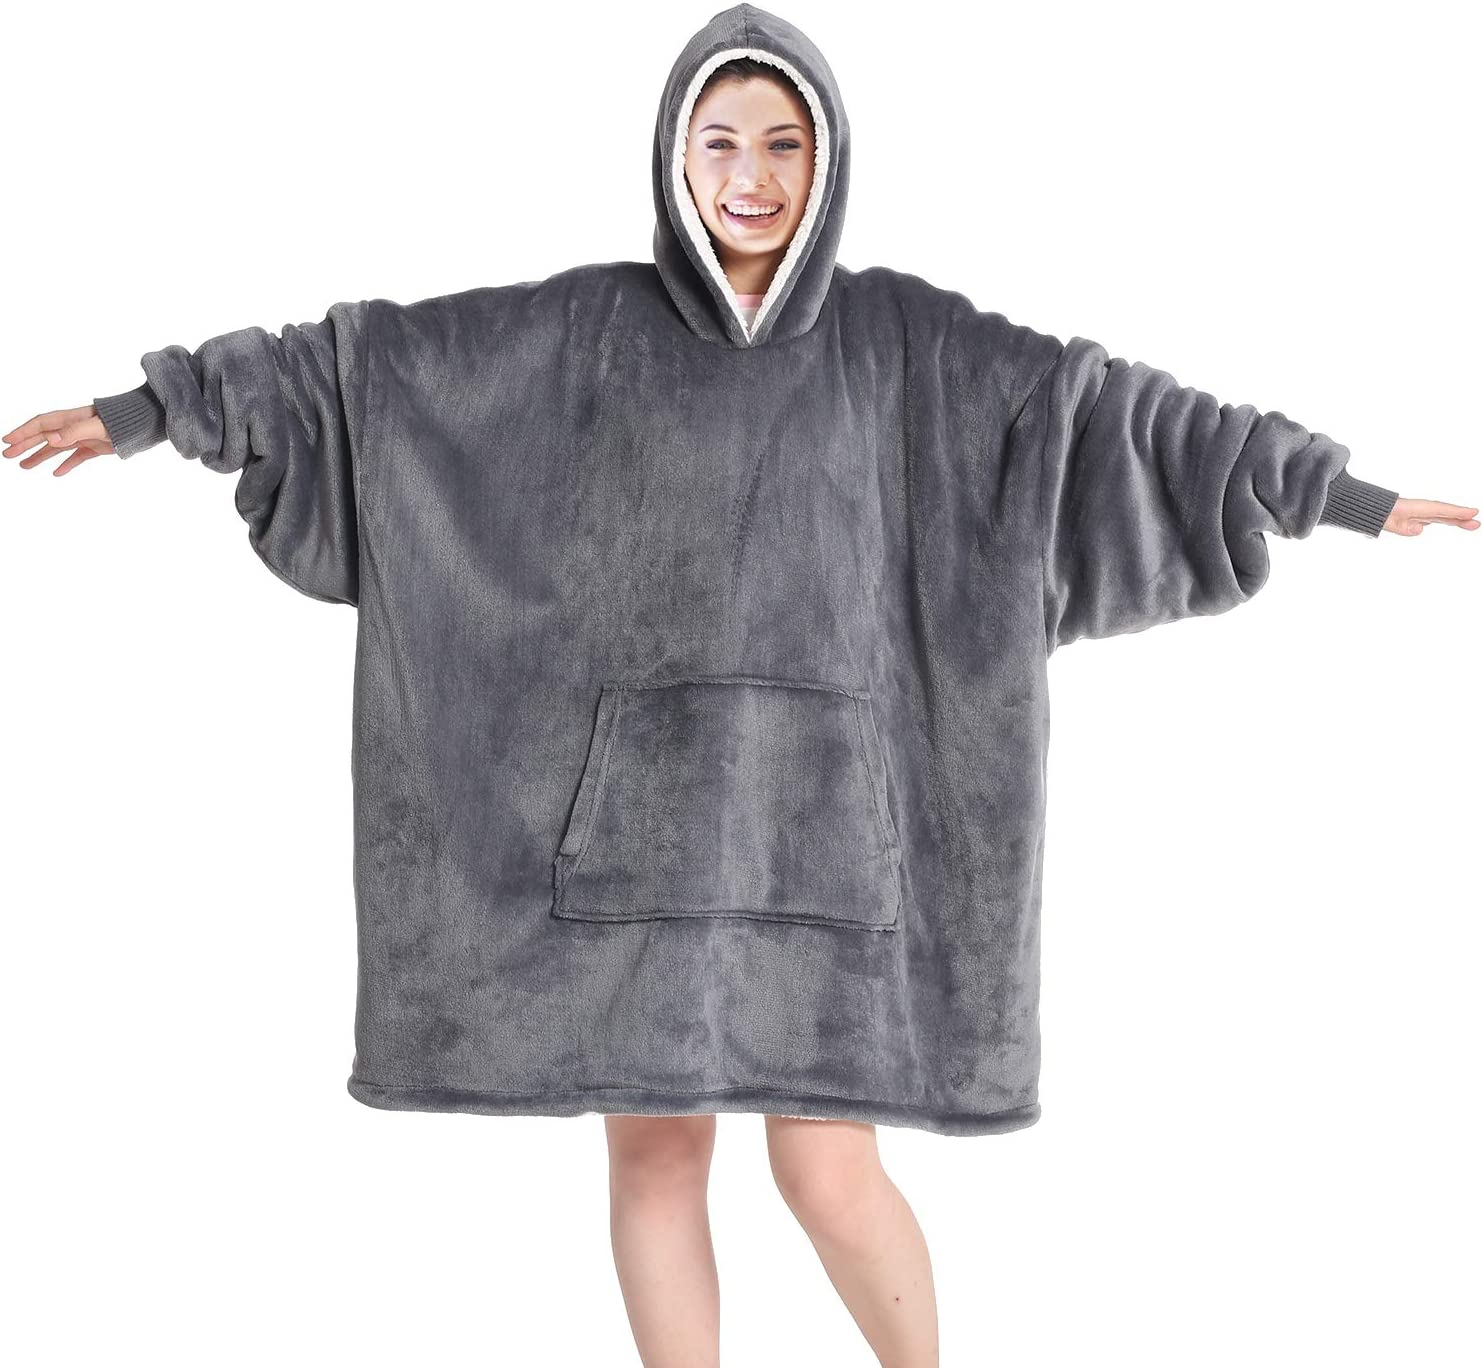 Touchat Wearable Blanket Hoodie, Oversized Sherpa Blanket Sweatshirt with Hood Pocket and Sleeves, Super Soft Warm Comfy Plush Hooded Blanket for Adult Women Men, One Size Fits All (Grey)